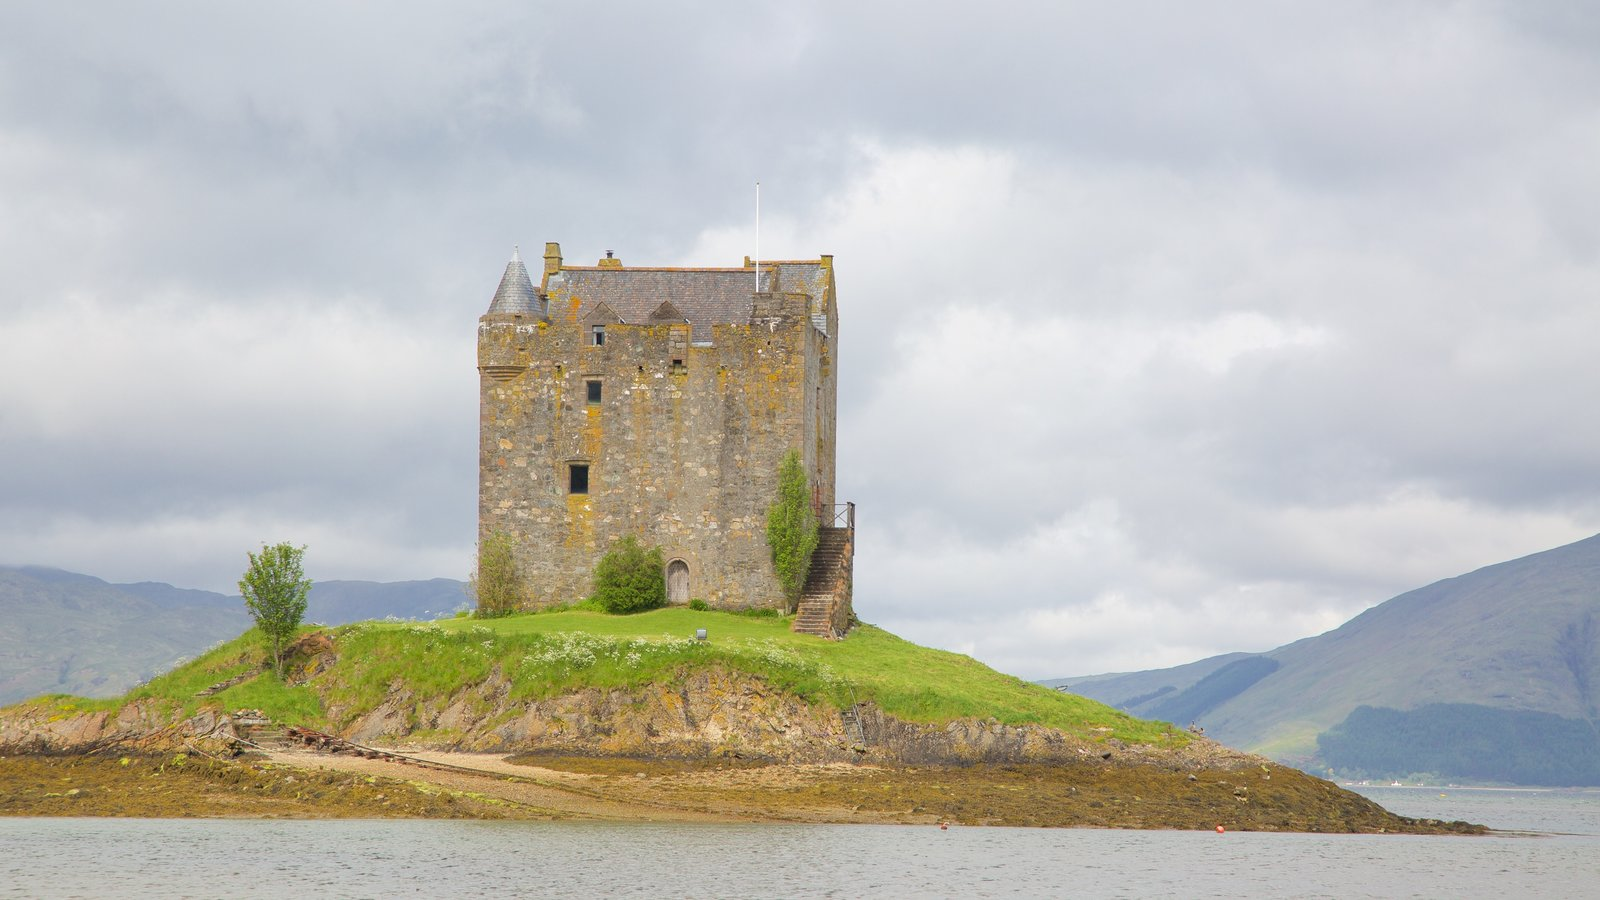 Castle Stalker which includes chateau or palace, a lake or waterhole and heritage elements